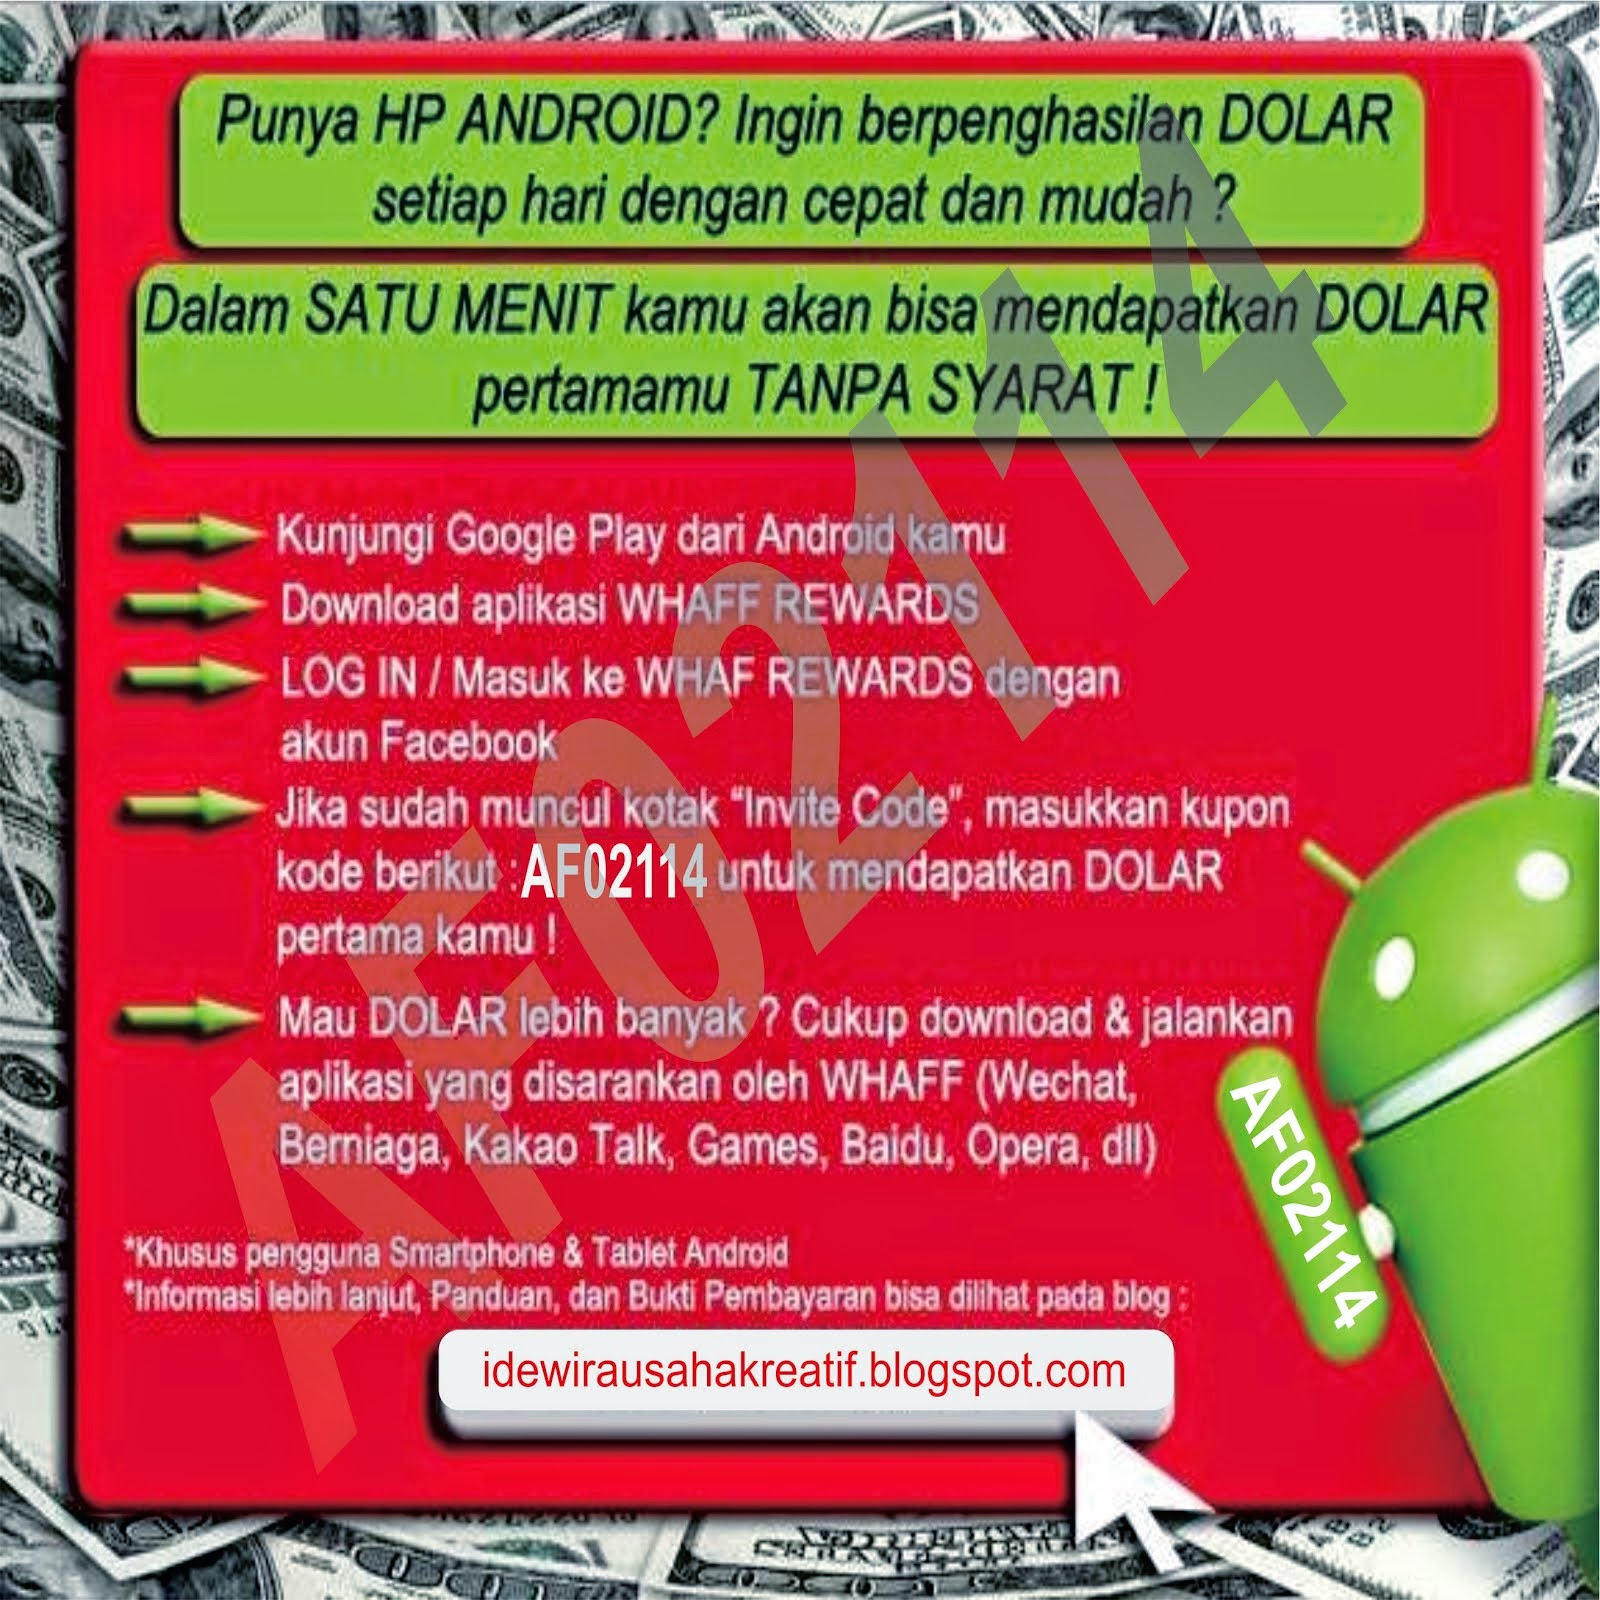 $$$ lewat HP Android